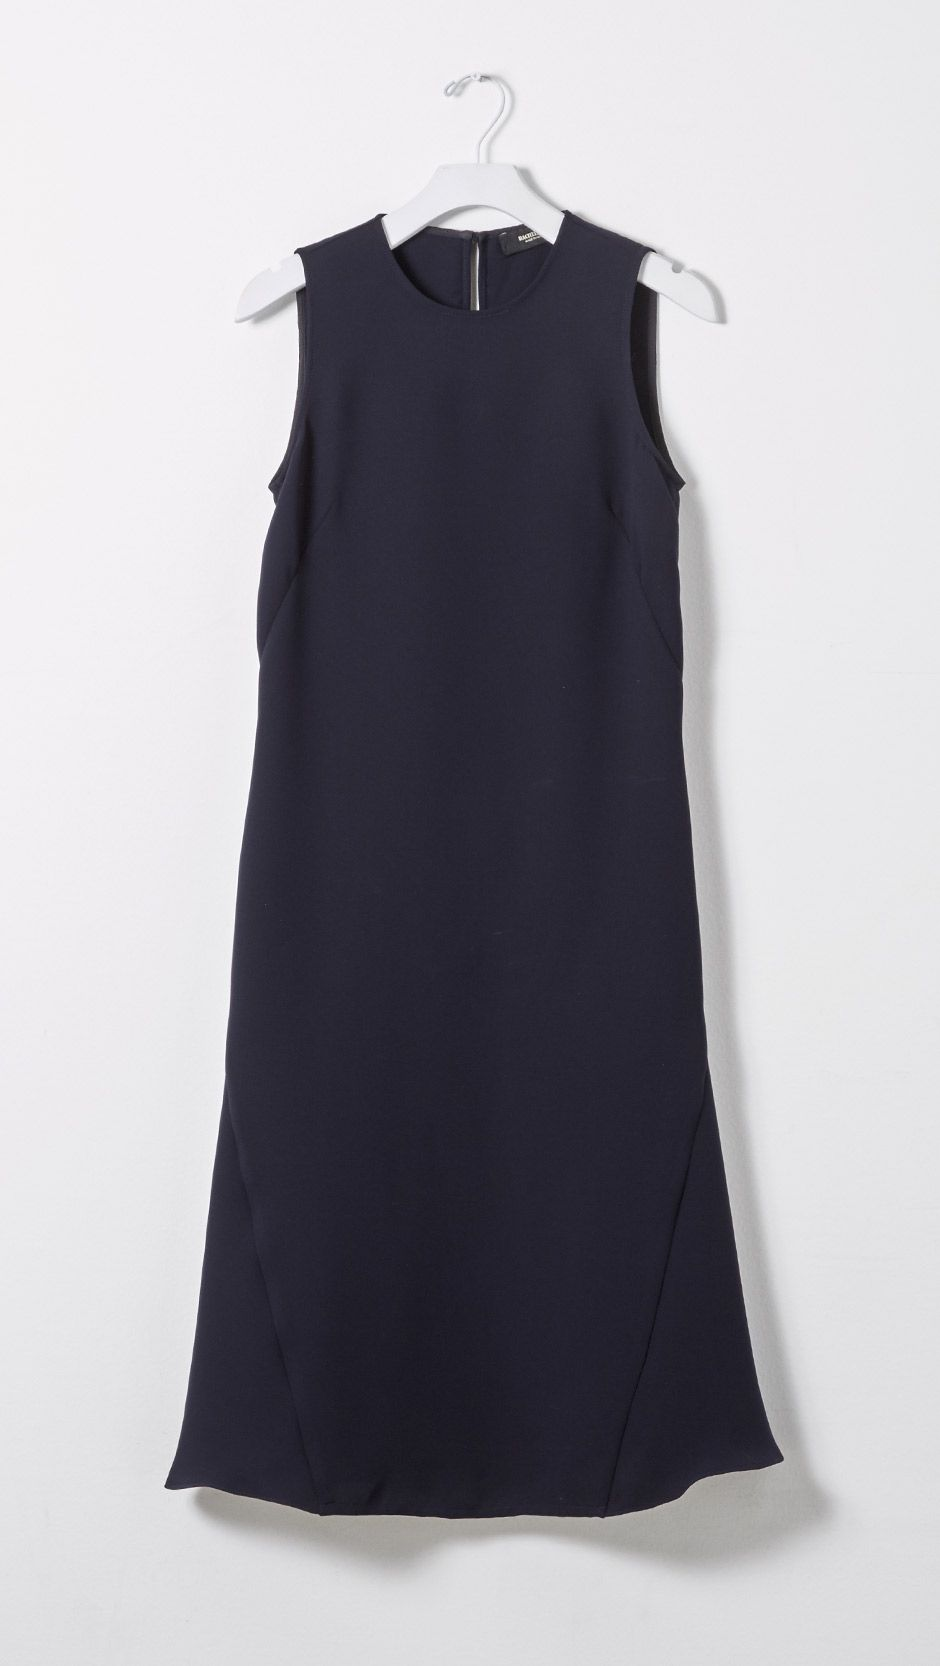 Barometer Navy Sleeveless Dress by Rachel Comey